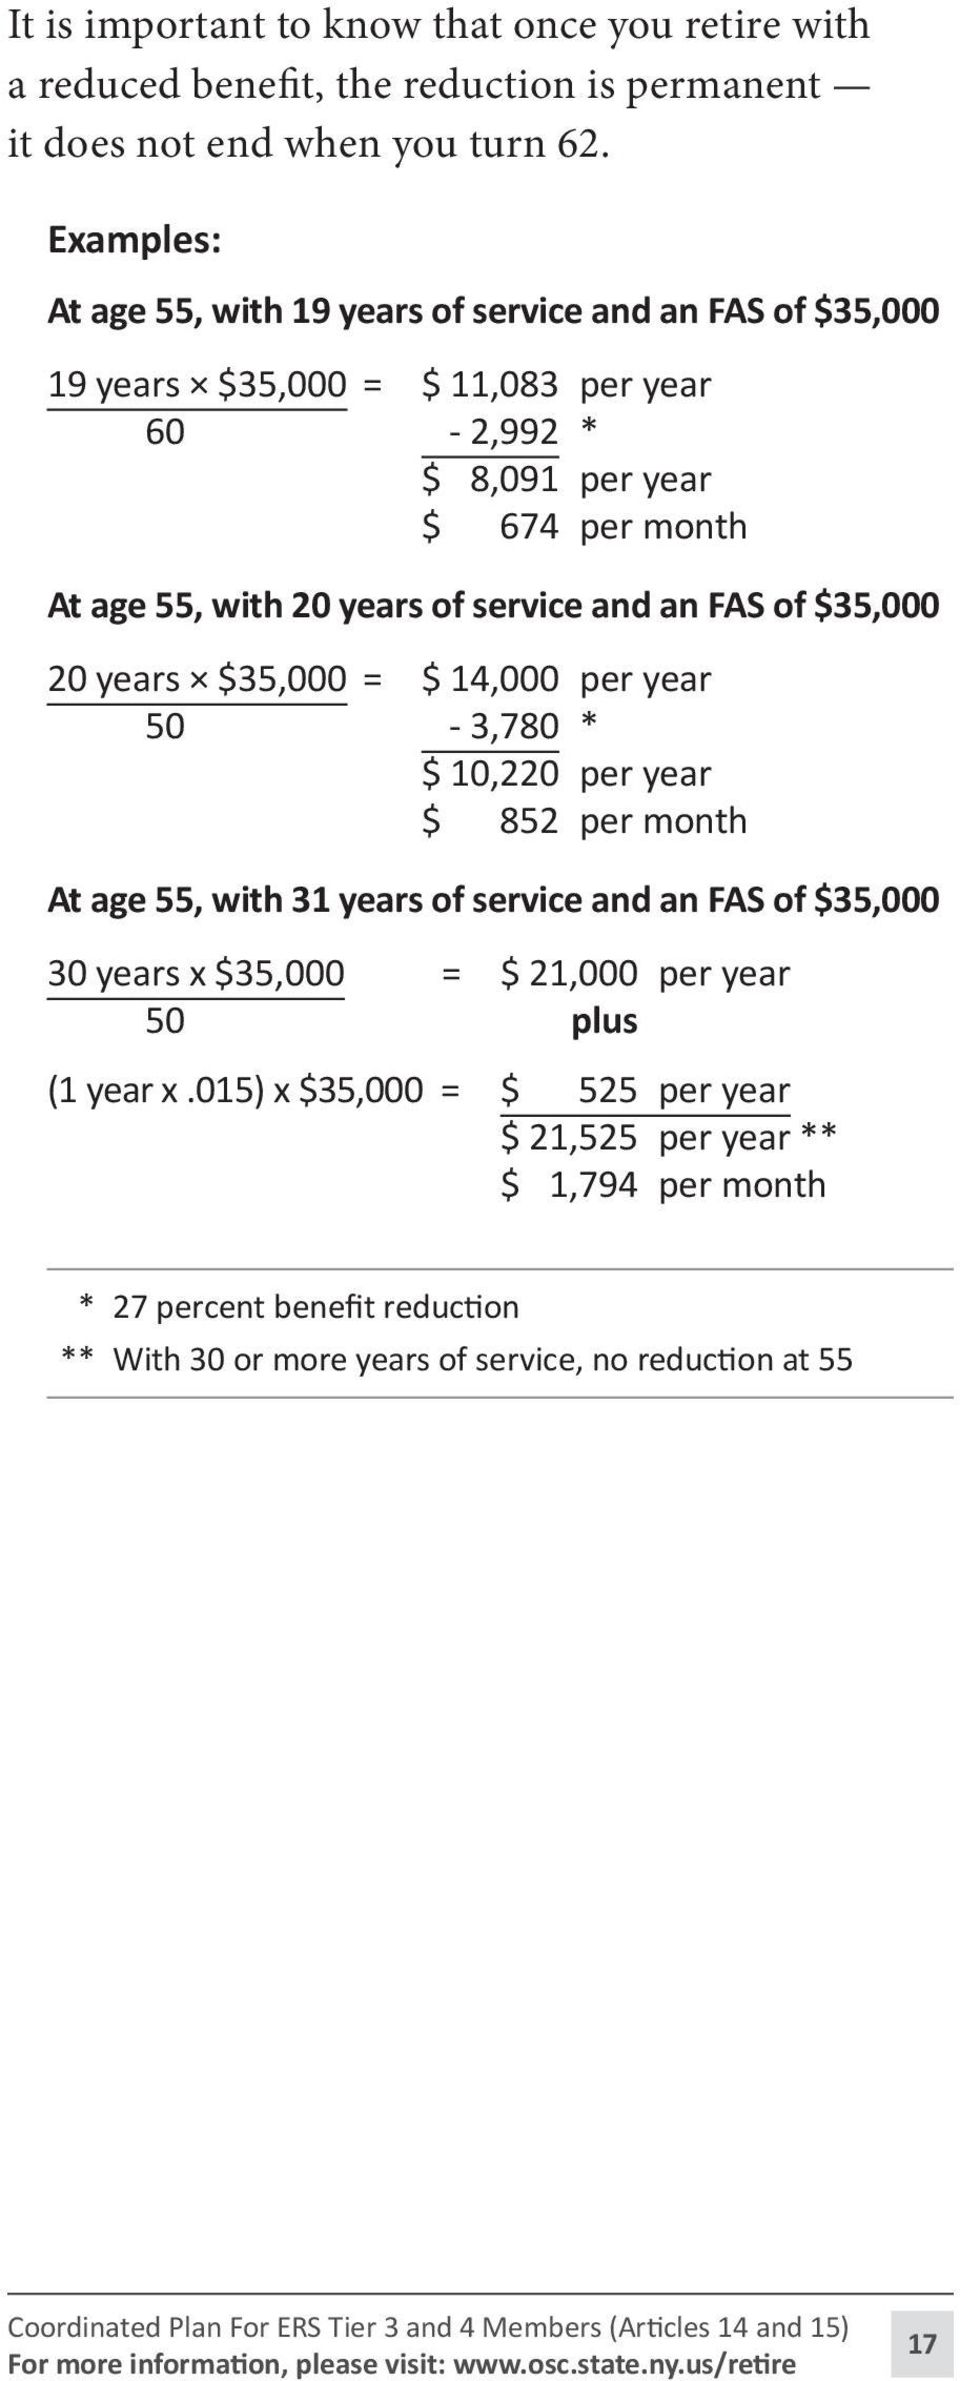 years of service and an FAS of $35,000 20 years $35,000 50 = $ 14,000 per year - 3,780 * $ 10,220 per year $ 852 per month At age 55, with 31 years of service and an FAS of